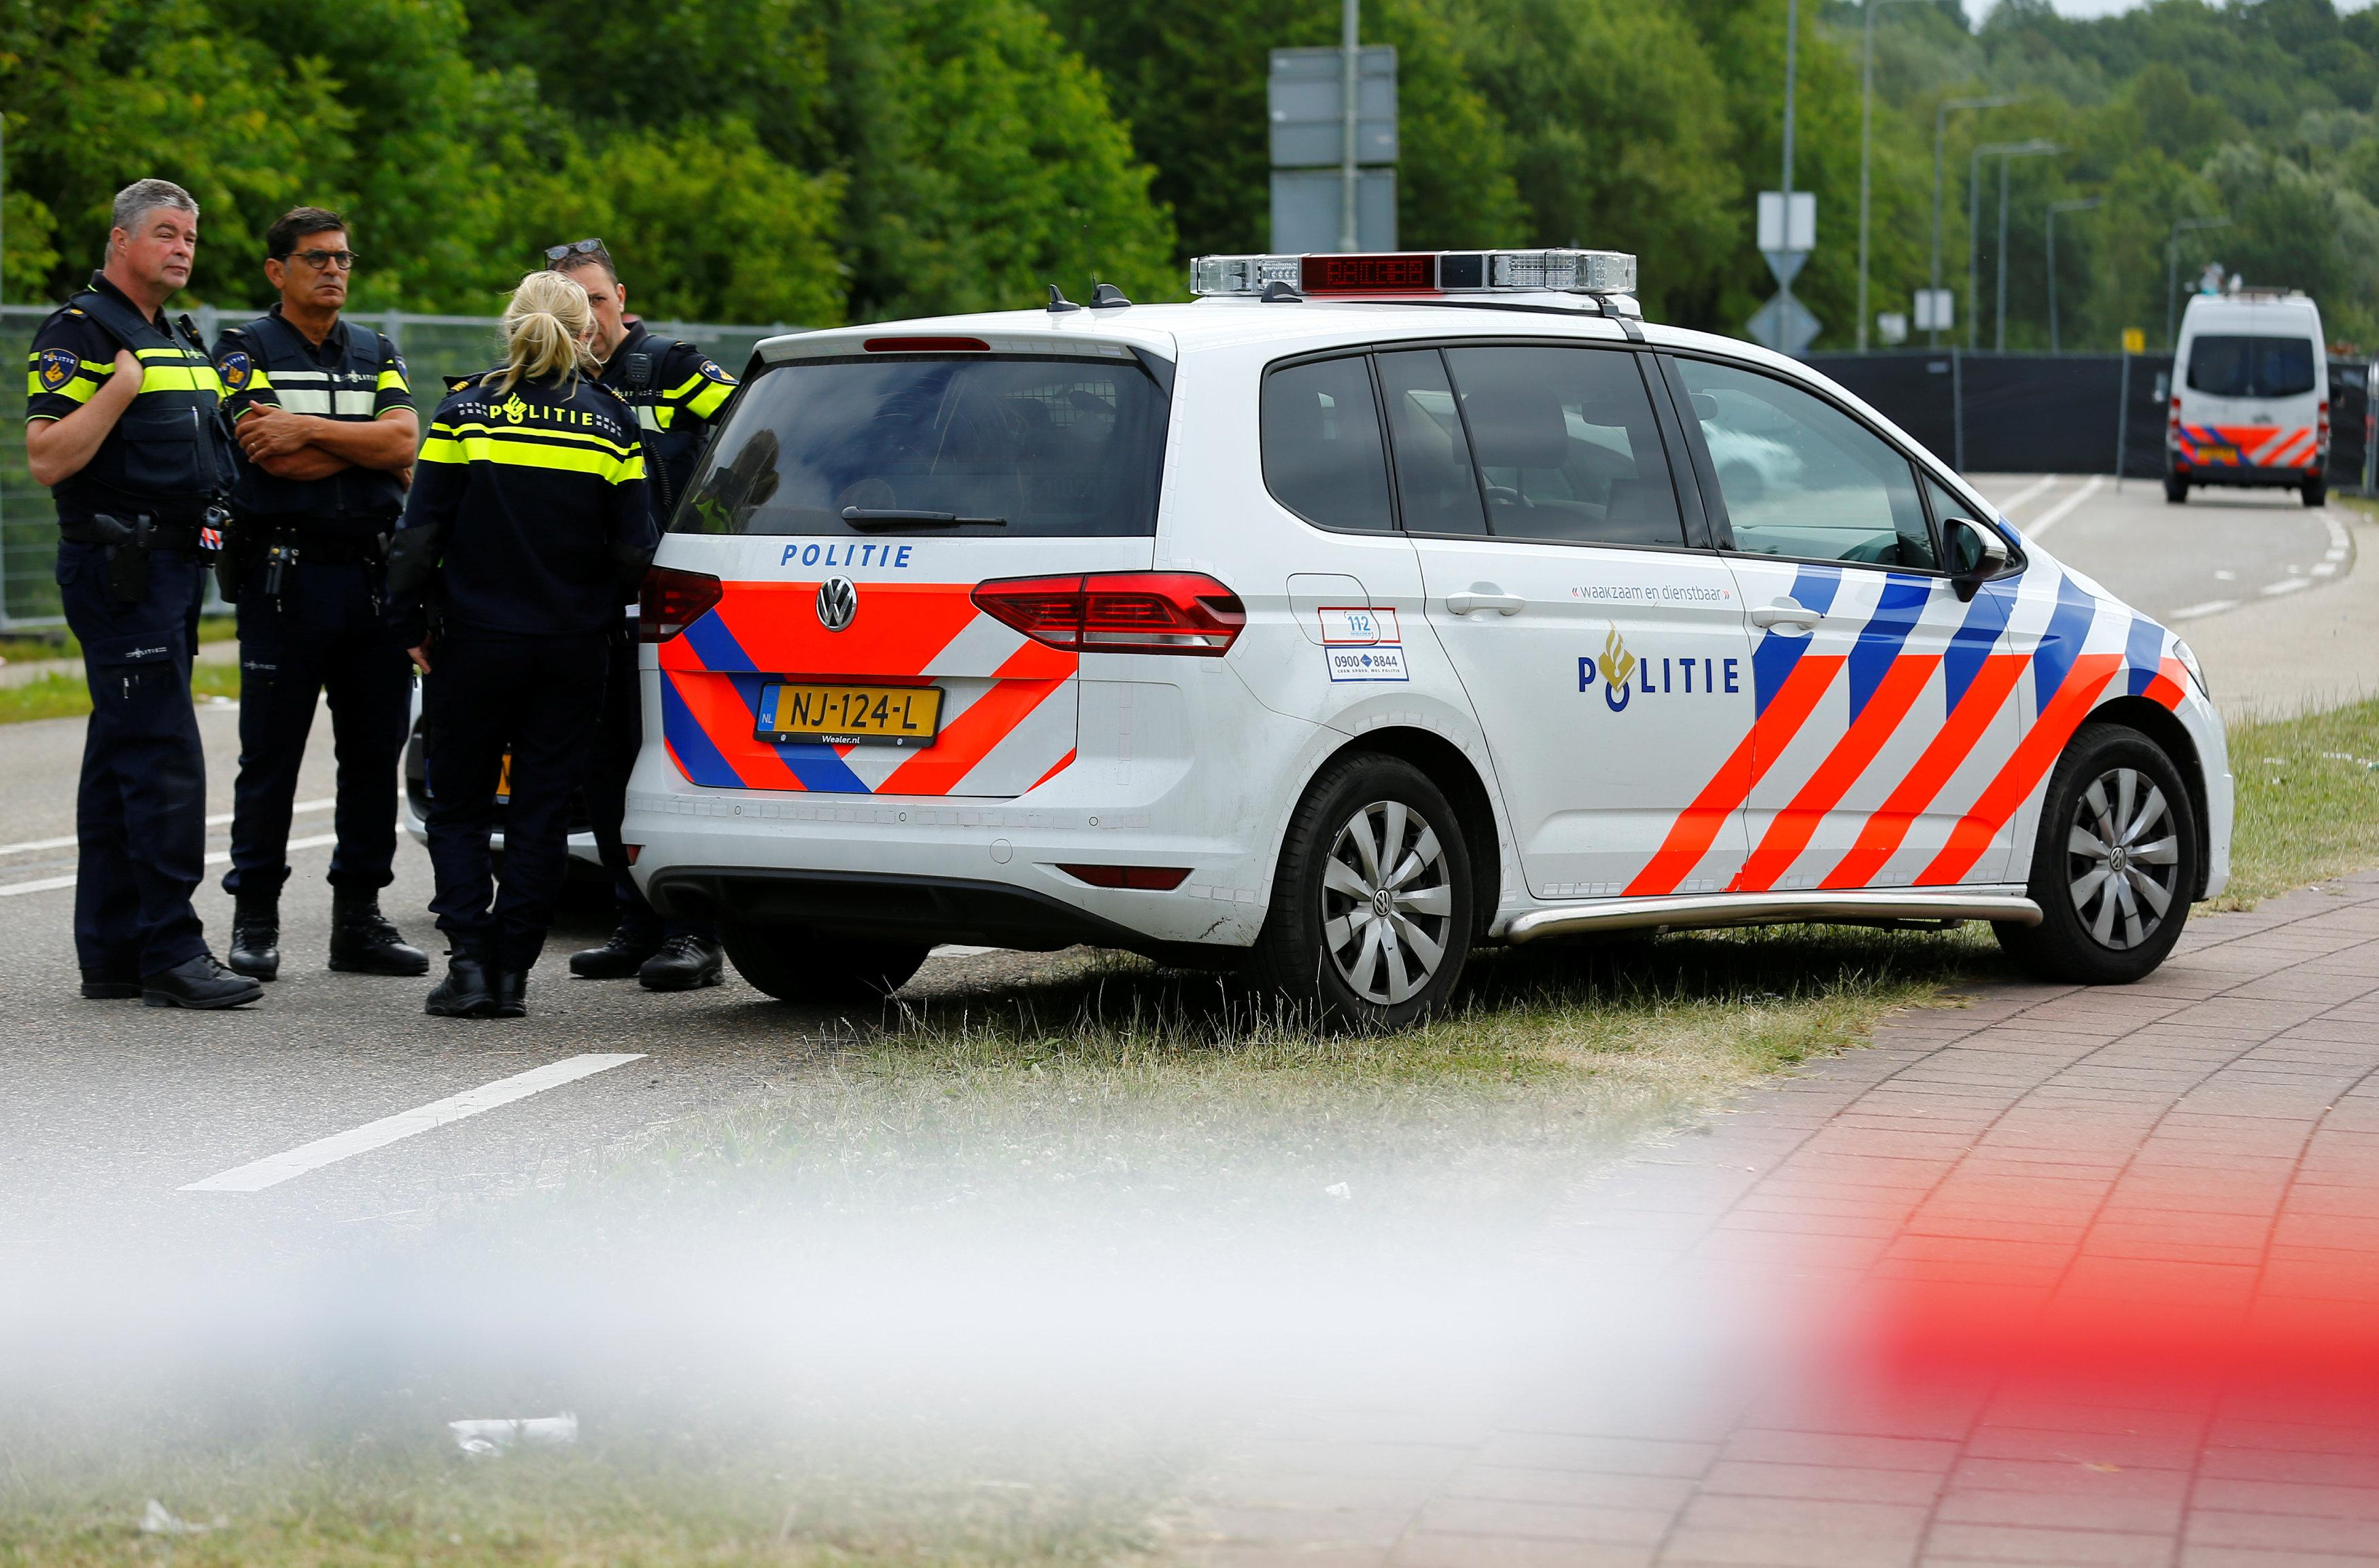 Police is seen near an incident scene where a van struck into people after a concert in Landgraaf, the Netherlands June 18, 2018. Thilo Schmuelgen